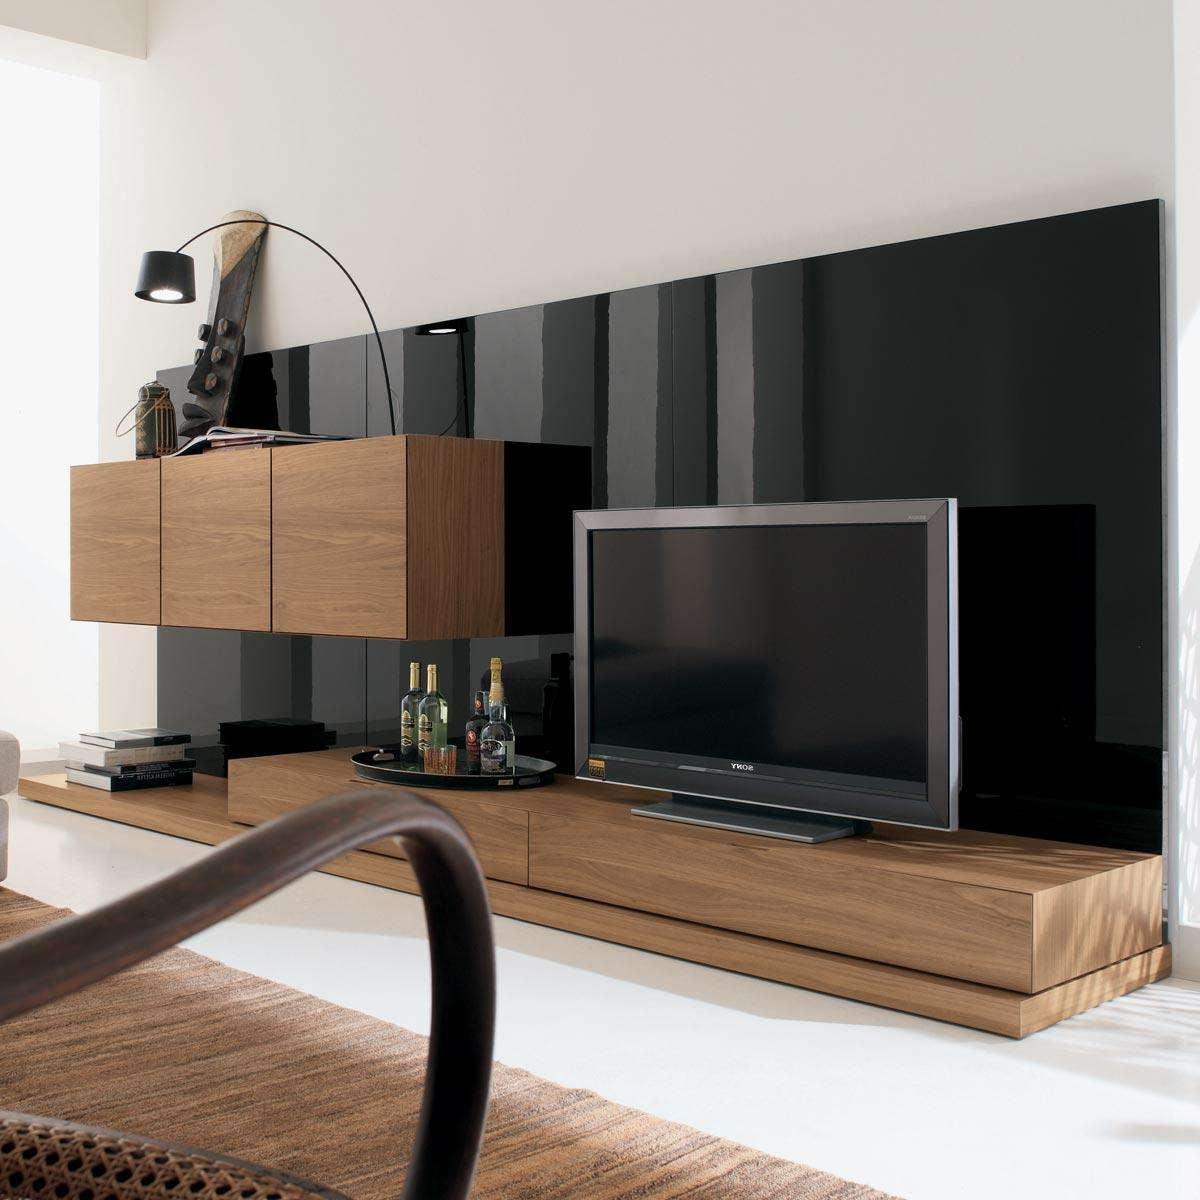 Modern Nature Wood Big Screen Tv Stand Wall Mounted Living Room Pertaining To Contemporary Modern Tv Stands (View 11 of 15)